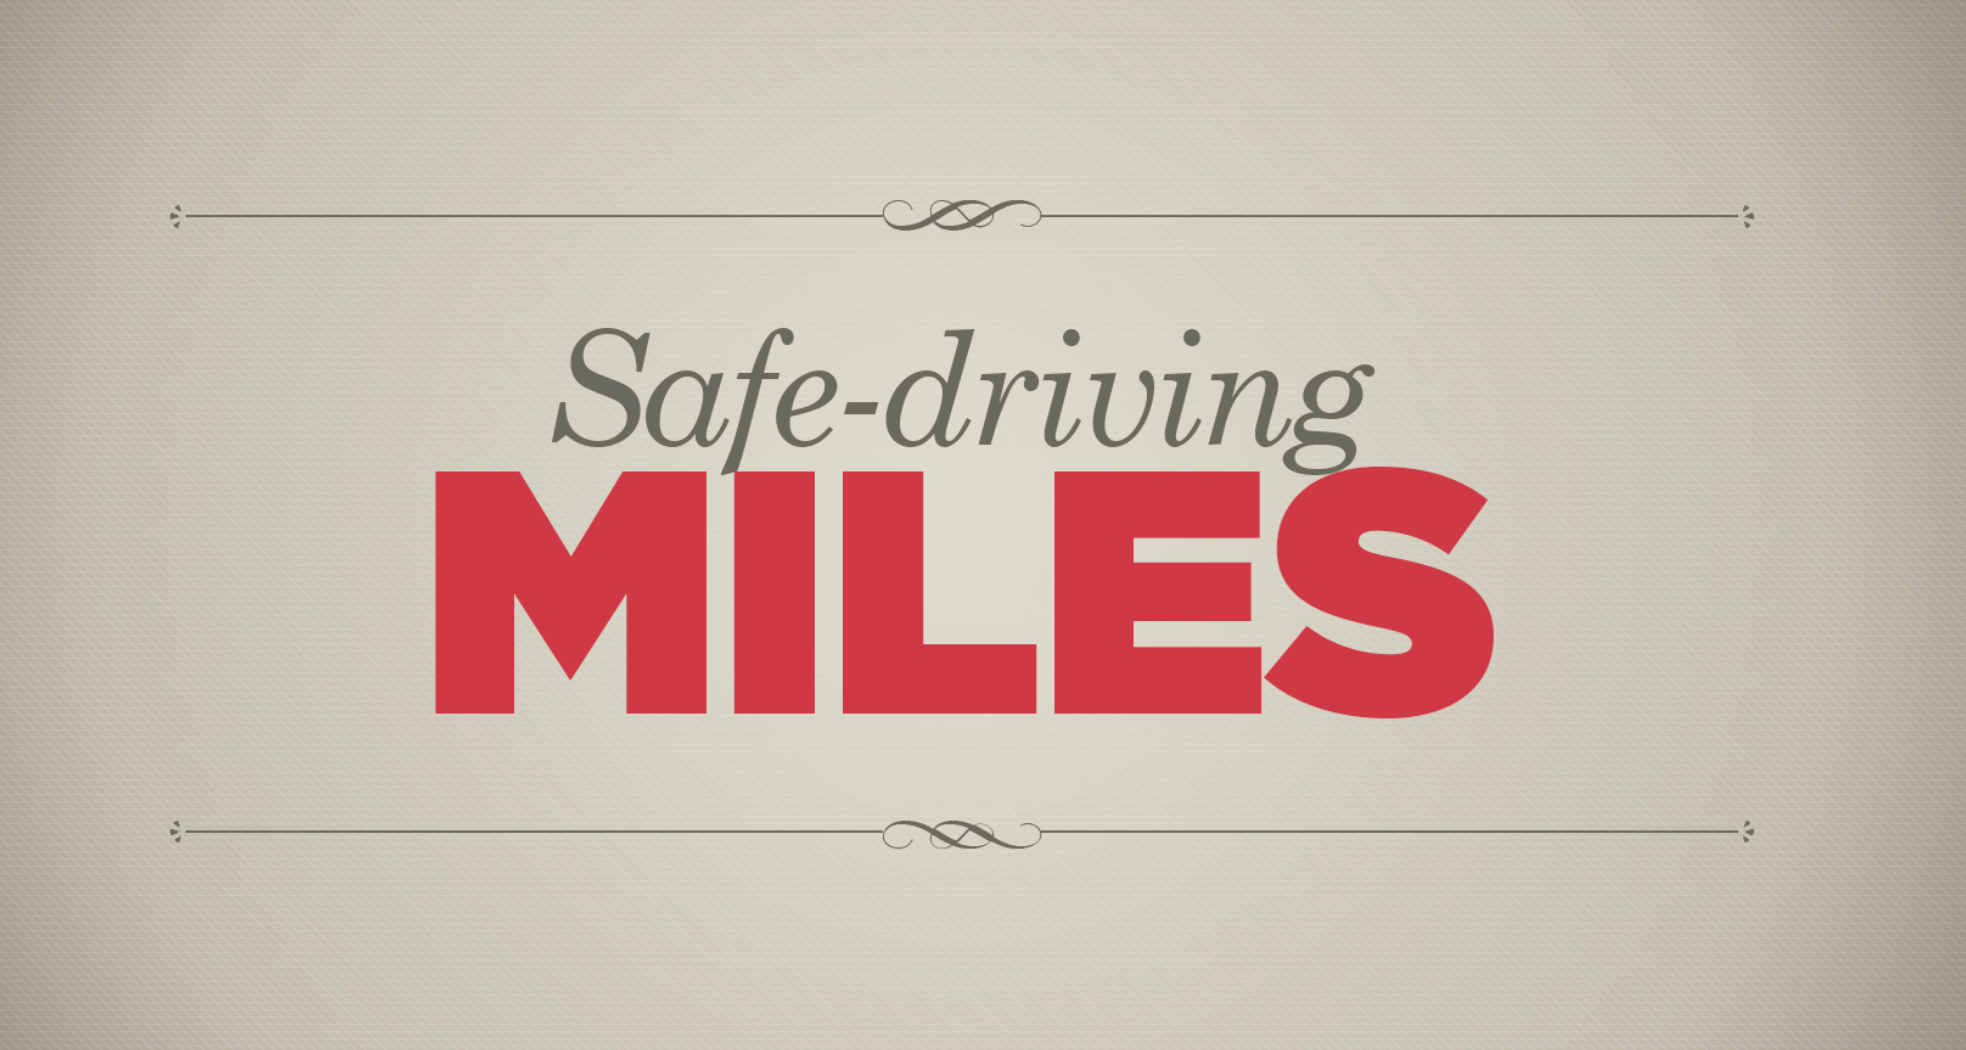 Banorte Insurances. Safe-driving Miles